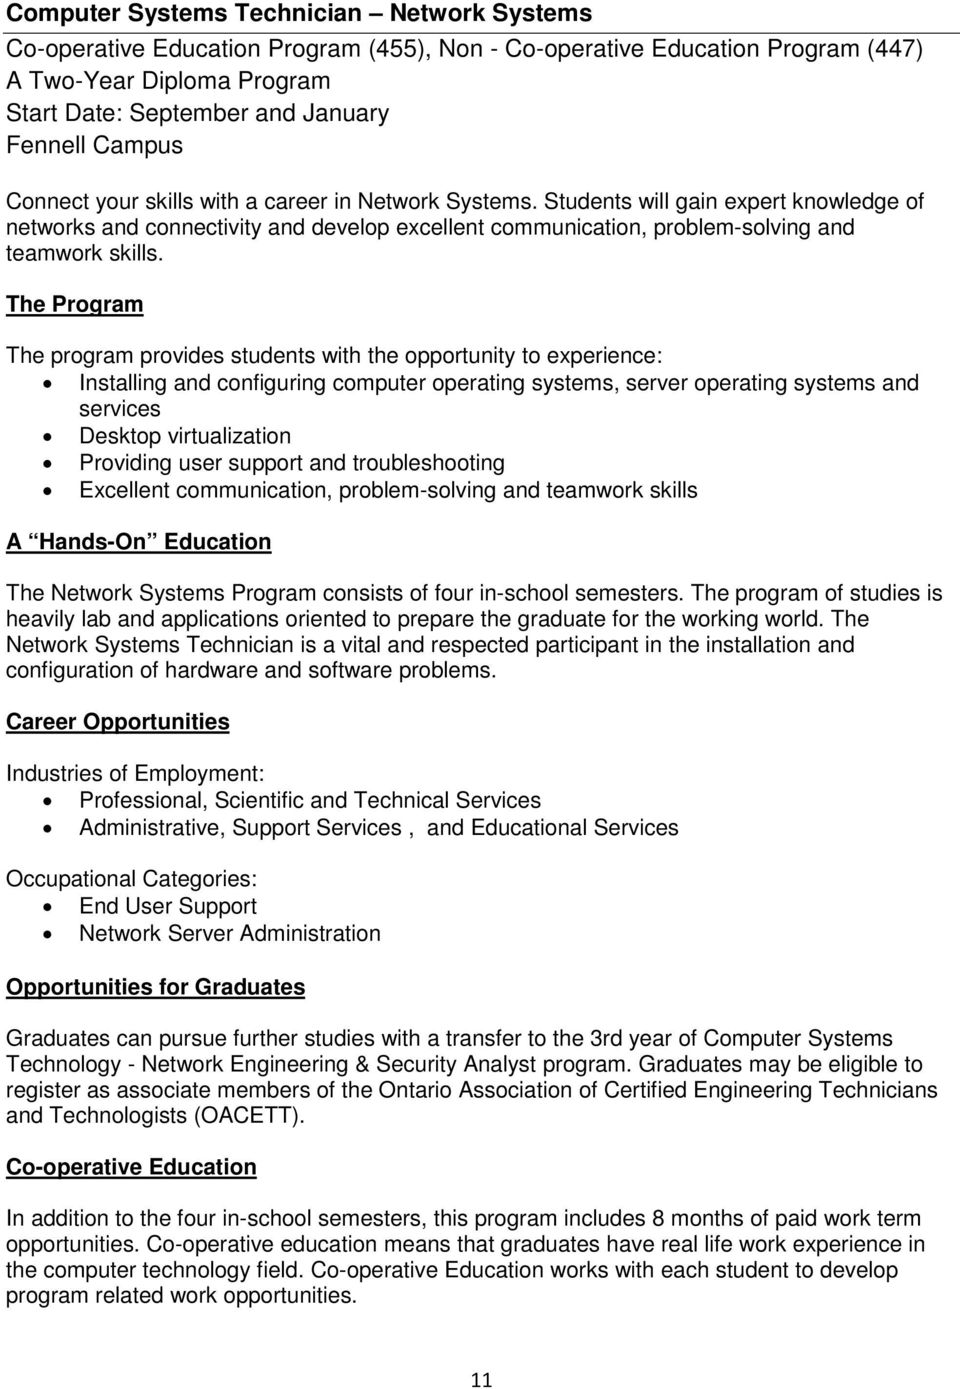 The Program The program provides students with the opportunity to experience: Installing and configuring computer operating systems, server operating systems and services Desktop virtualization